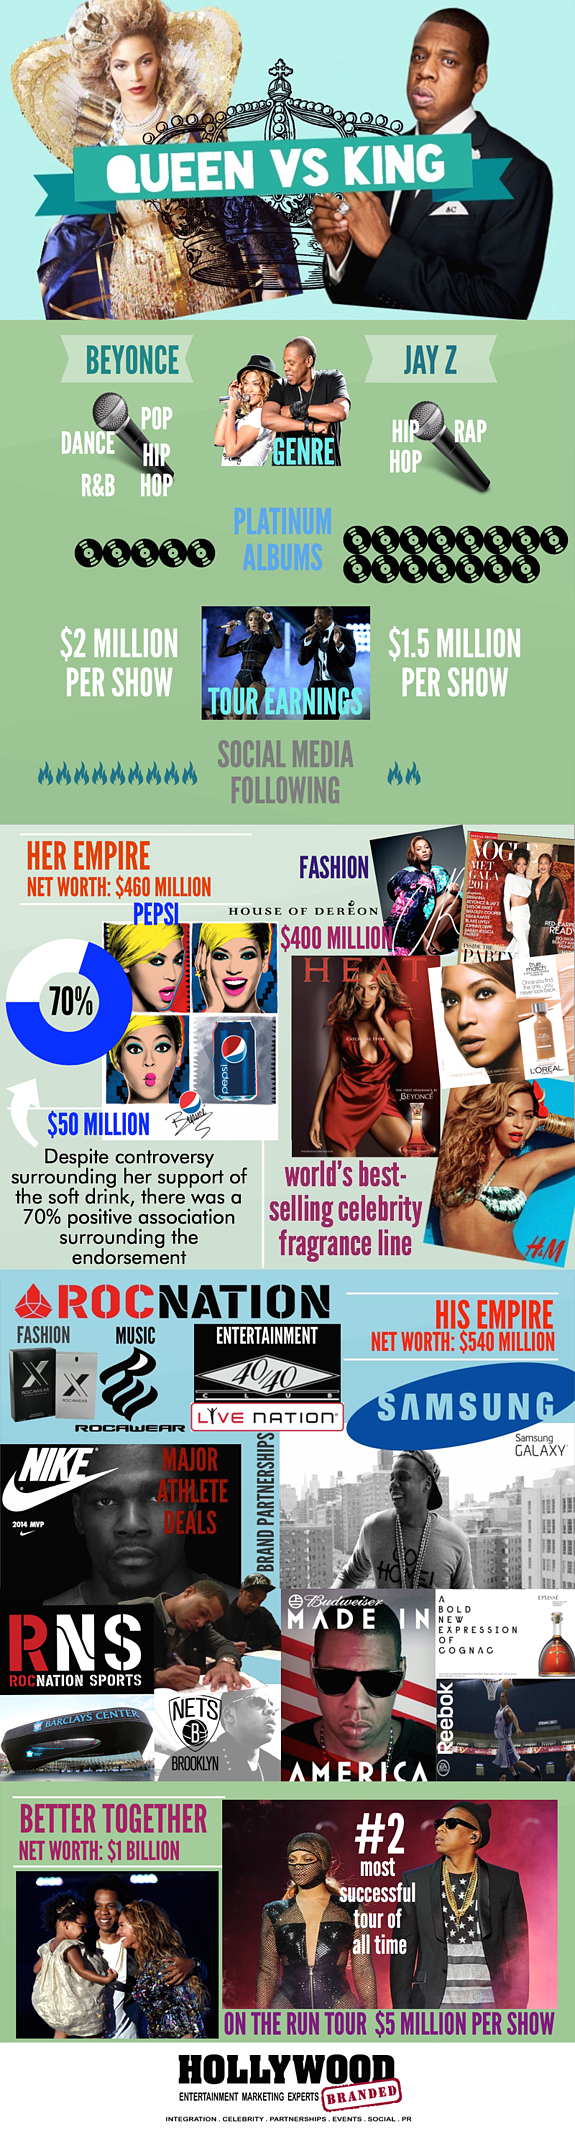 Beyonce and Jay Z Endorsements